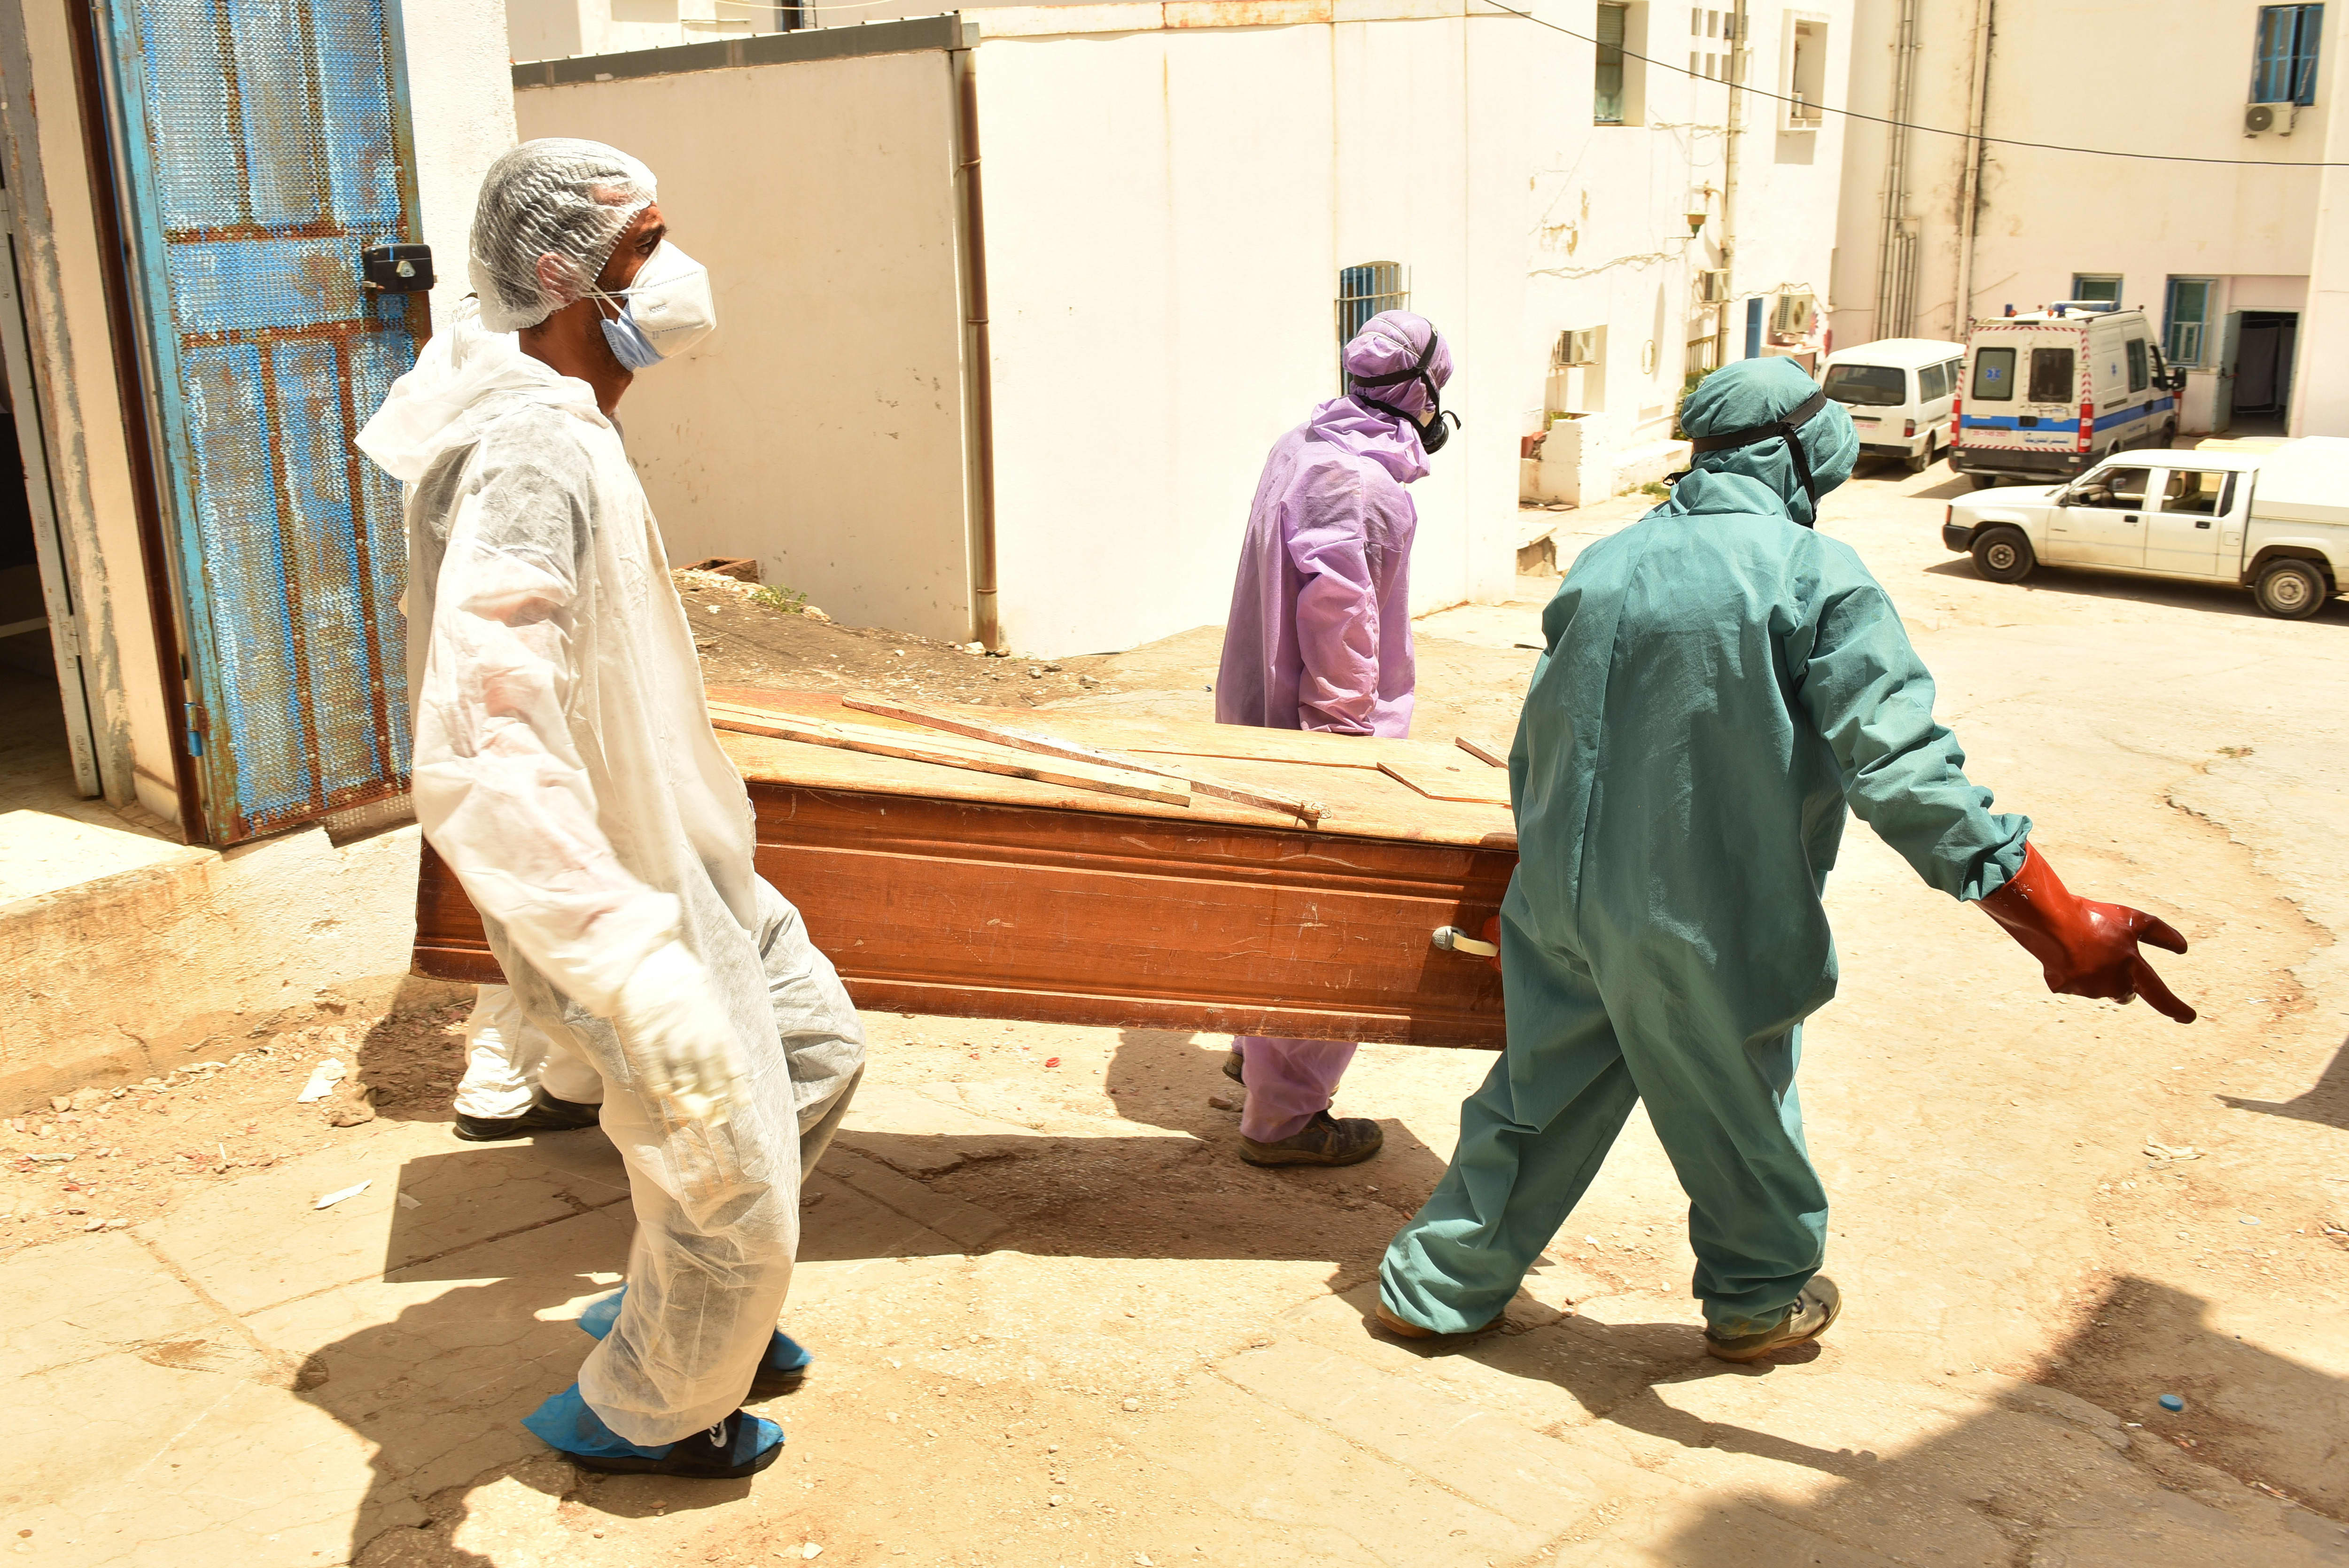 Image Africa suffers worst surge in Covid cases as delta variant spurs third wave of pandemic